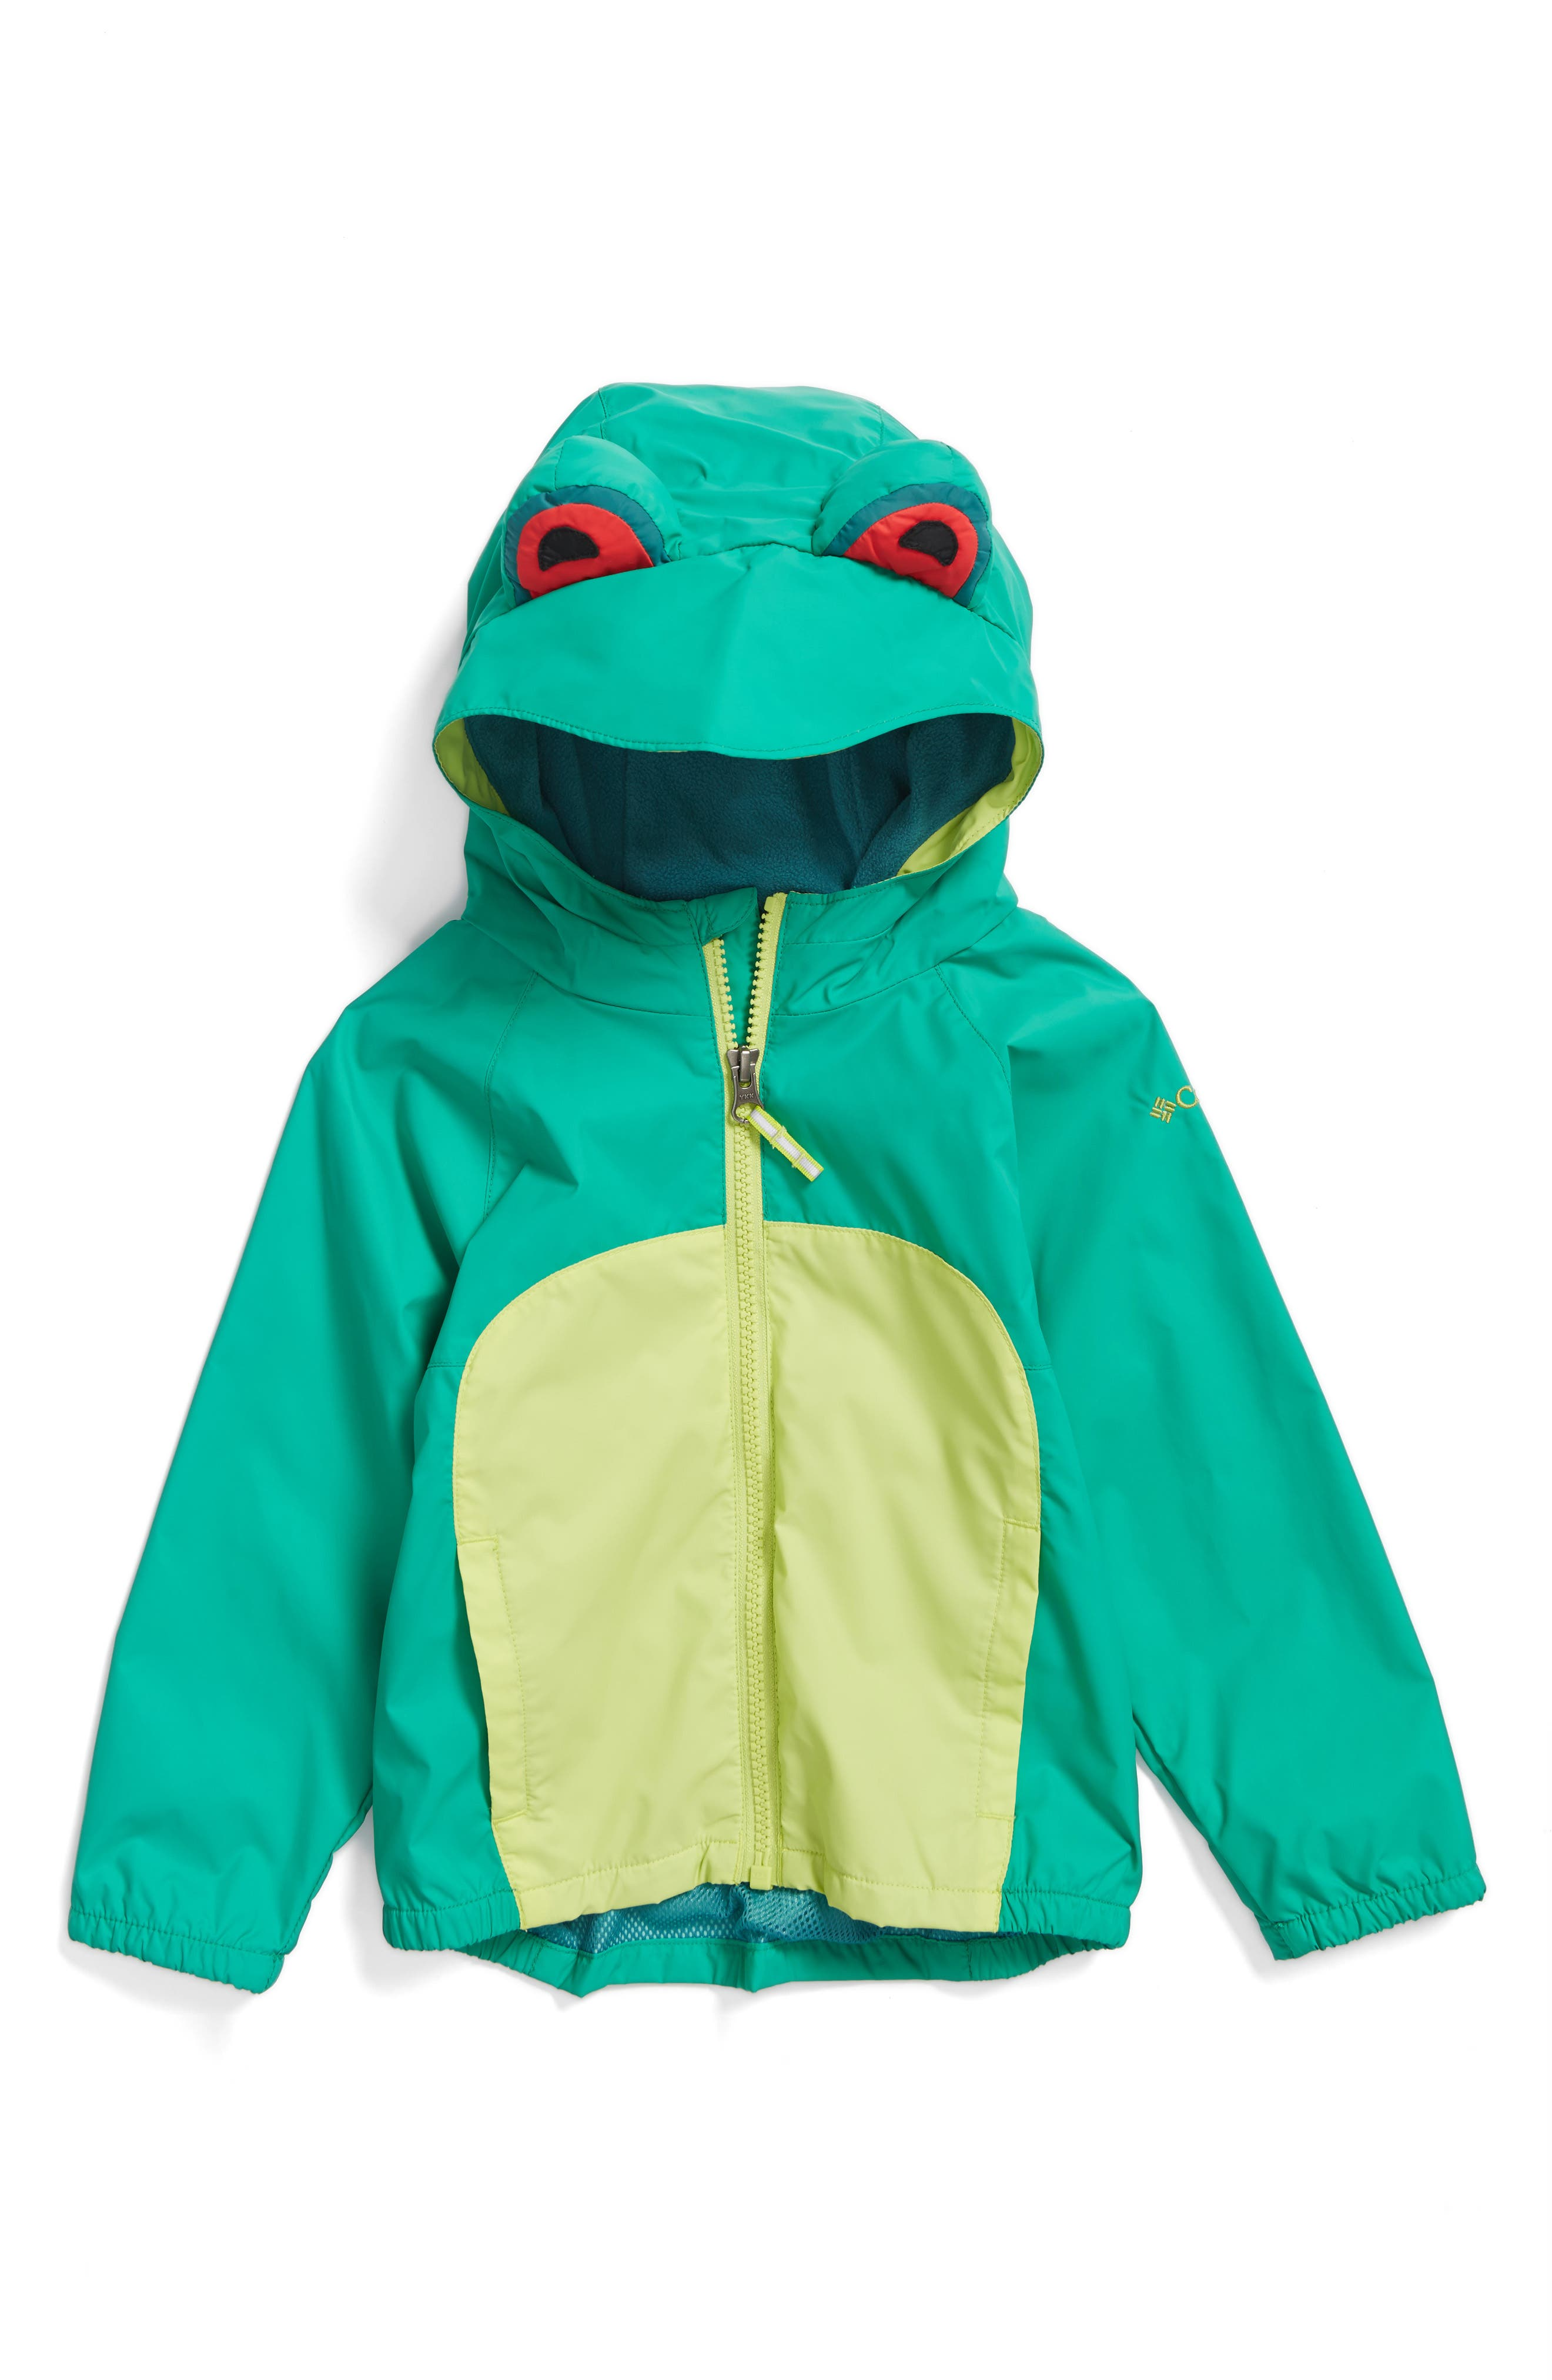 Kitteribbit Water Resistant Windbreaker,                             Main thumbnail 1, color,                             Circuit Tree Frog